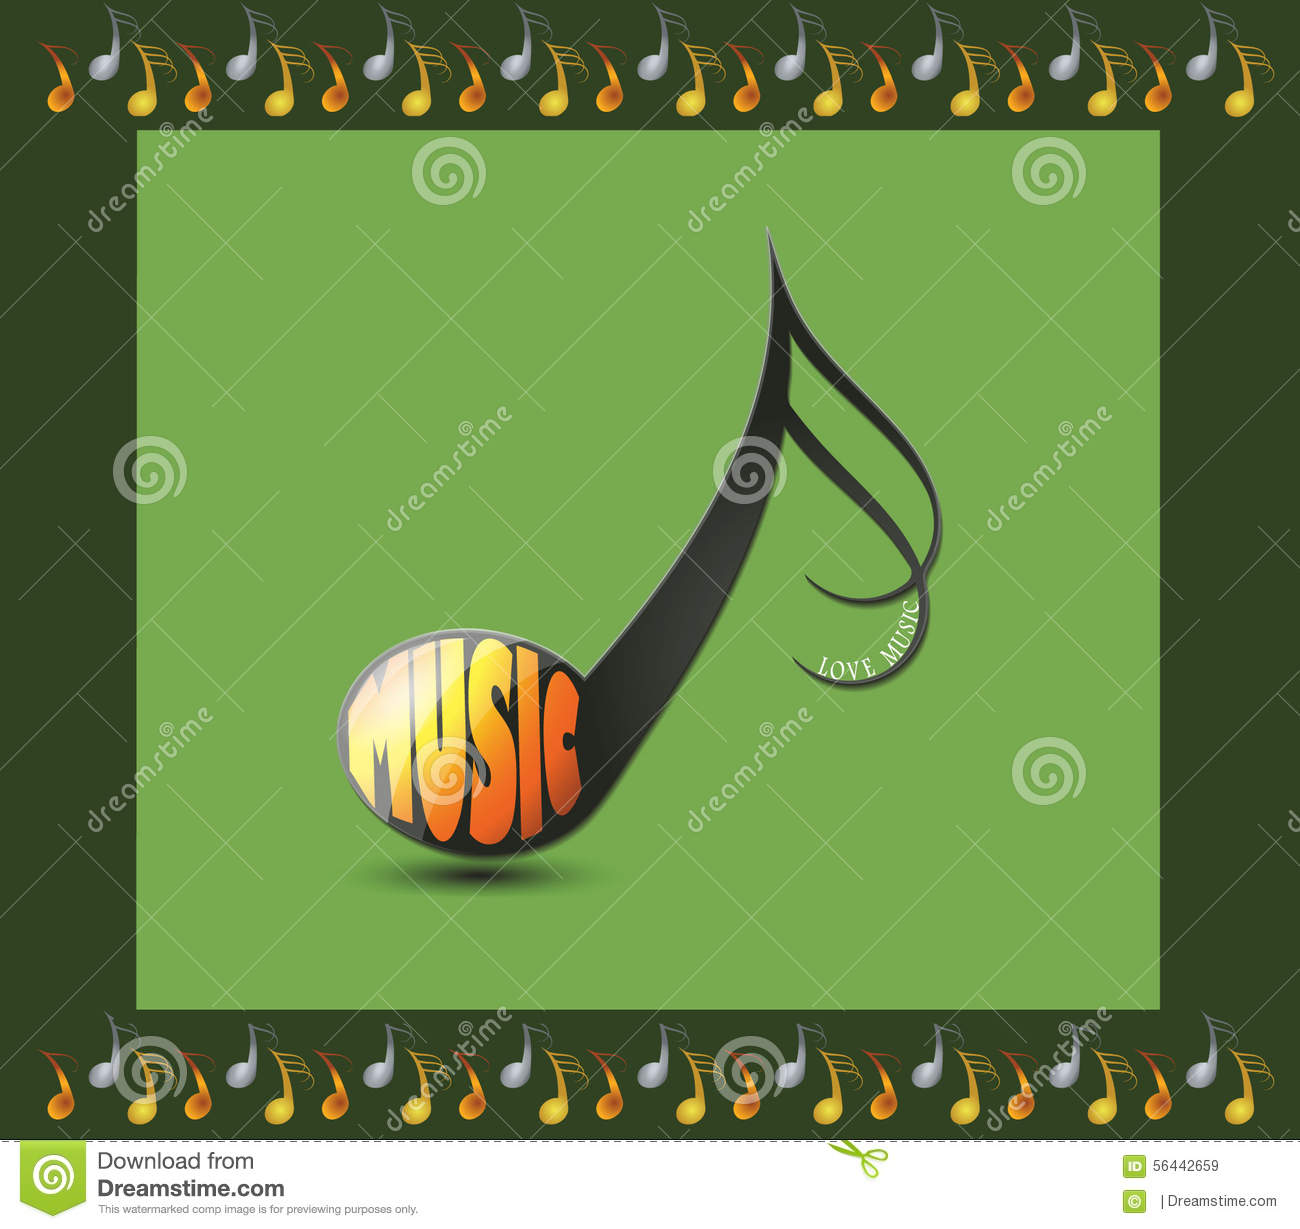 download musical note with the word music stock illustration illustration of creative musical